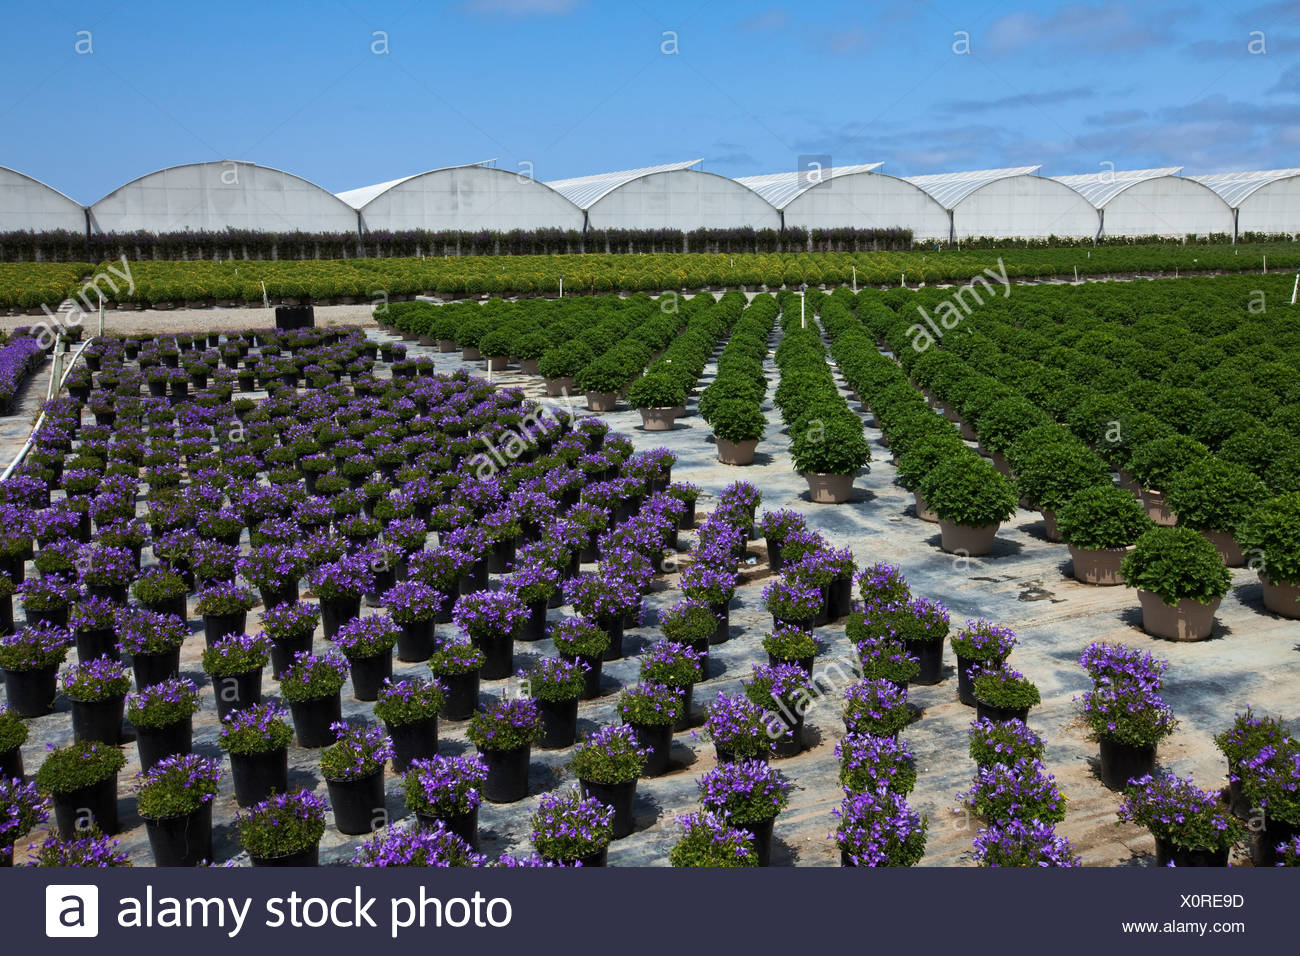 Potted ornamentals, bedding plants and shrubs at a horticultural nursery and greenhouse / Salinas, California, USA. - Stock Image